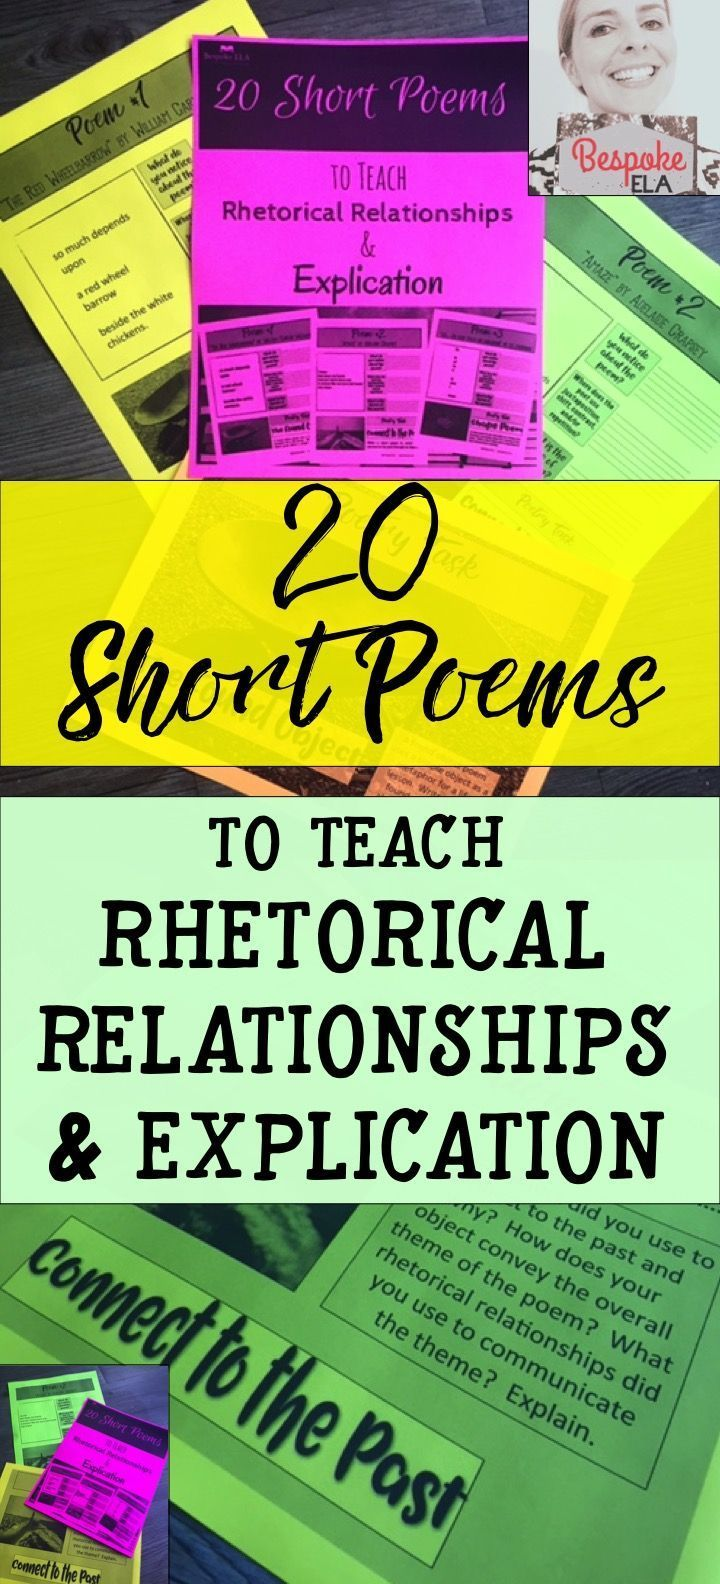 This product by Bespoke ELA contains 20 short poems to analyze for the four, basic rhetorical relationships: juxtaposition, contrast, shift, and repetition. For each poem, students will:  1. Make observations. 2. Identify and analyze the four rhetorical relationships  3.  Write original poems.  4.  Explain how they use rhetorical devices to communicate a theme.  Great for middle school and high school English Language Arts.  Grades 6-12.  by Bespoke ELA